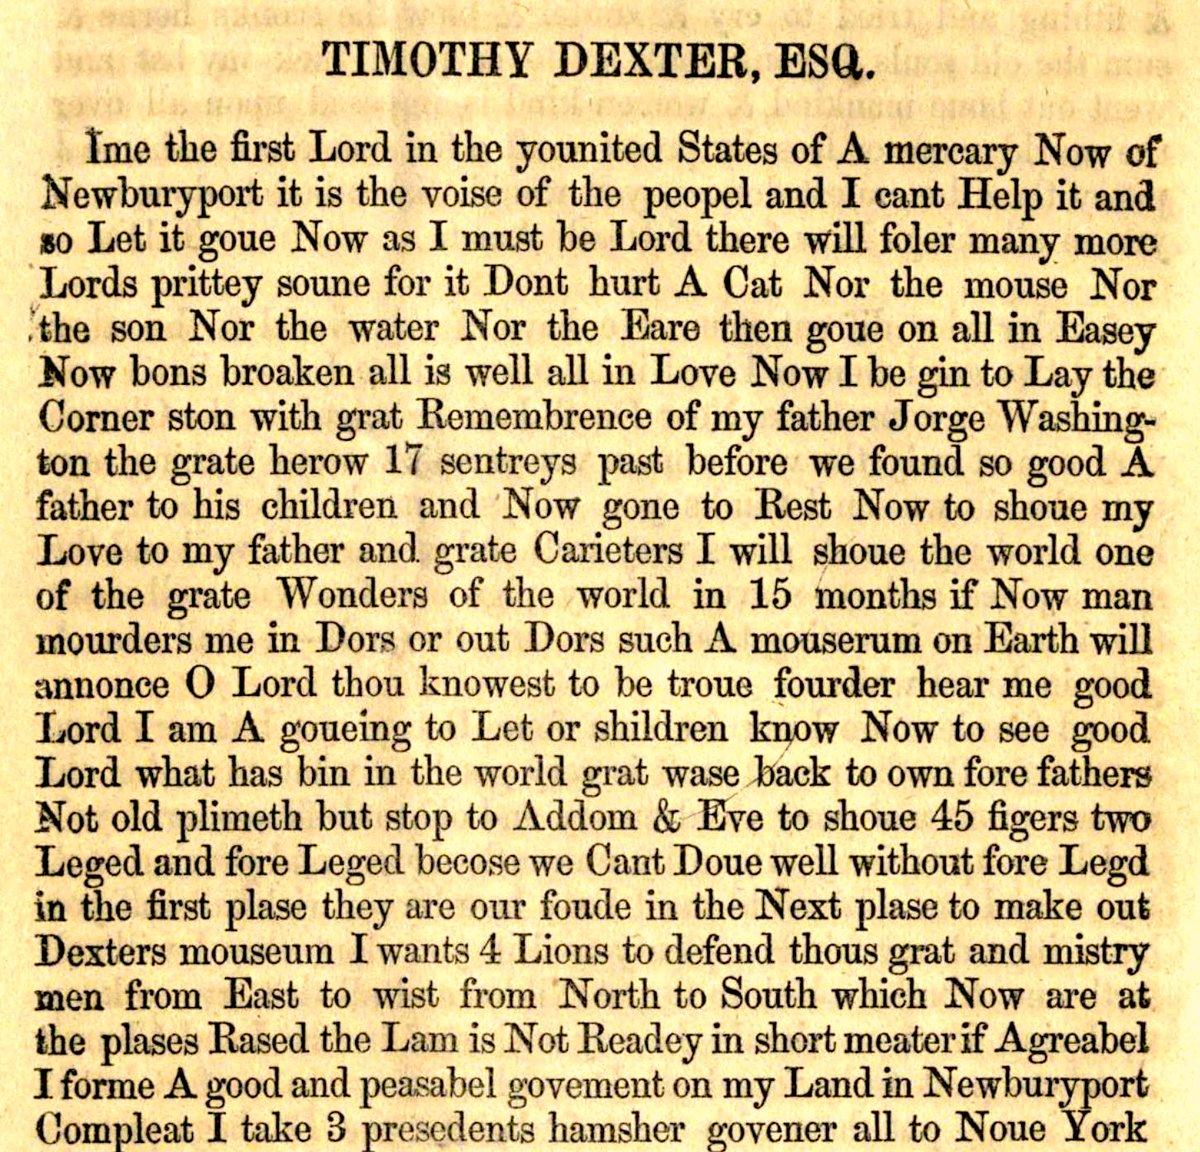 "Haggard Hawks 📚🦅 on Twitter: ""The American eccentric Lord Timothy Dexter's 1802 book 'A Pickle for the Knowing Ones' contained almost no punctuation. When readers complained, he published a second edition containing"